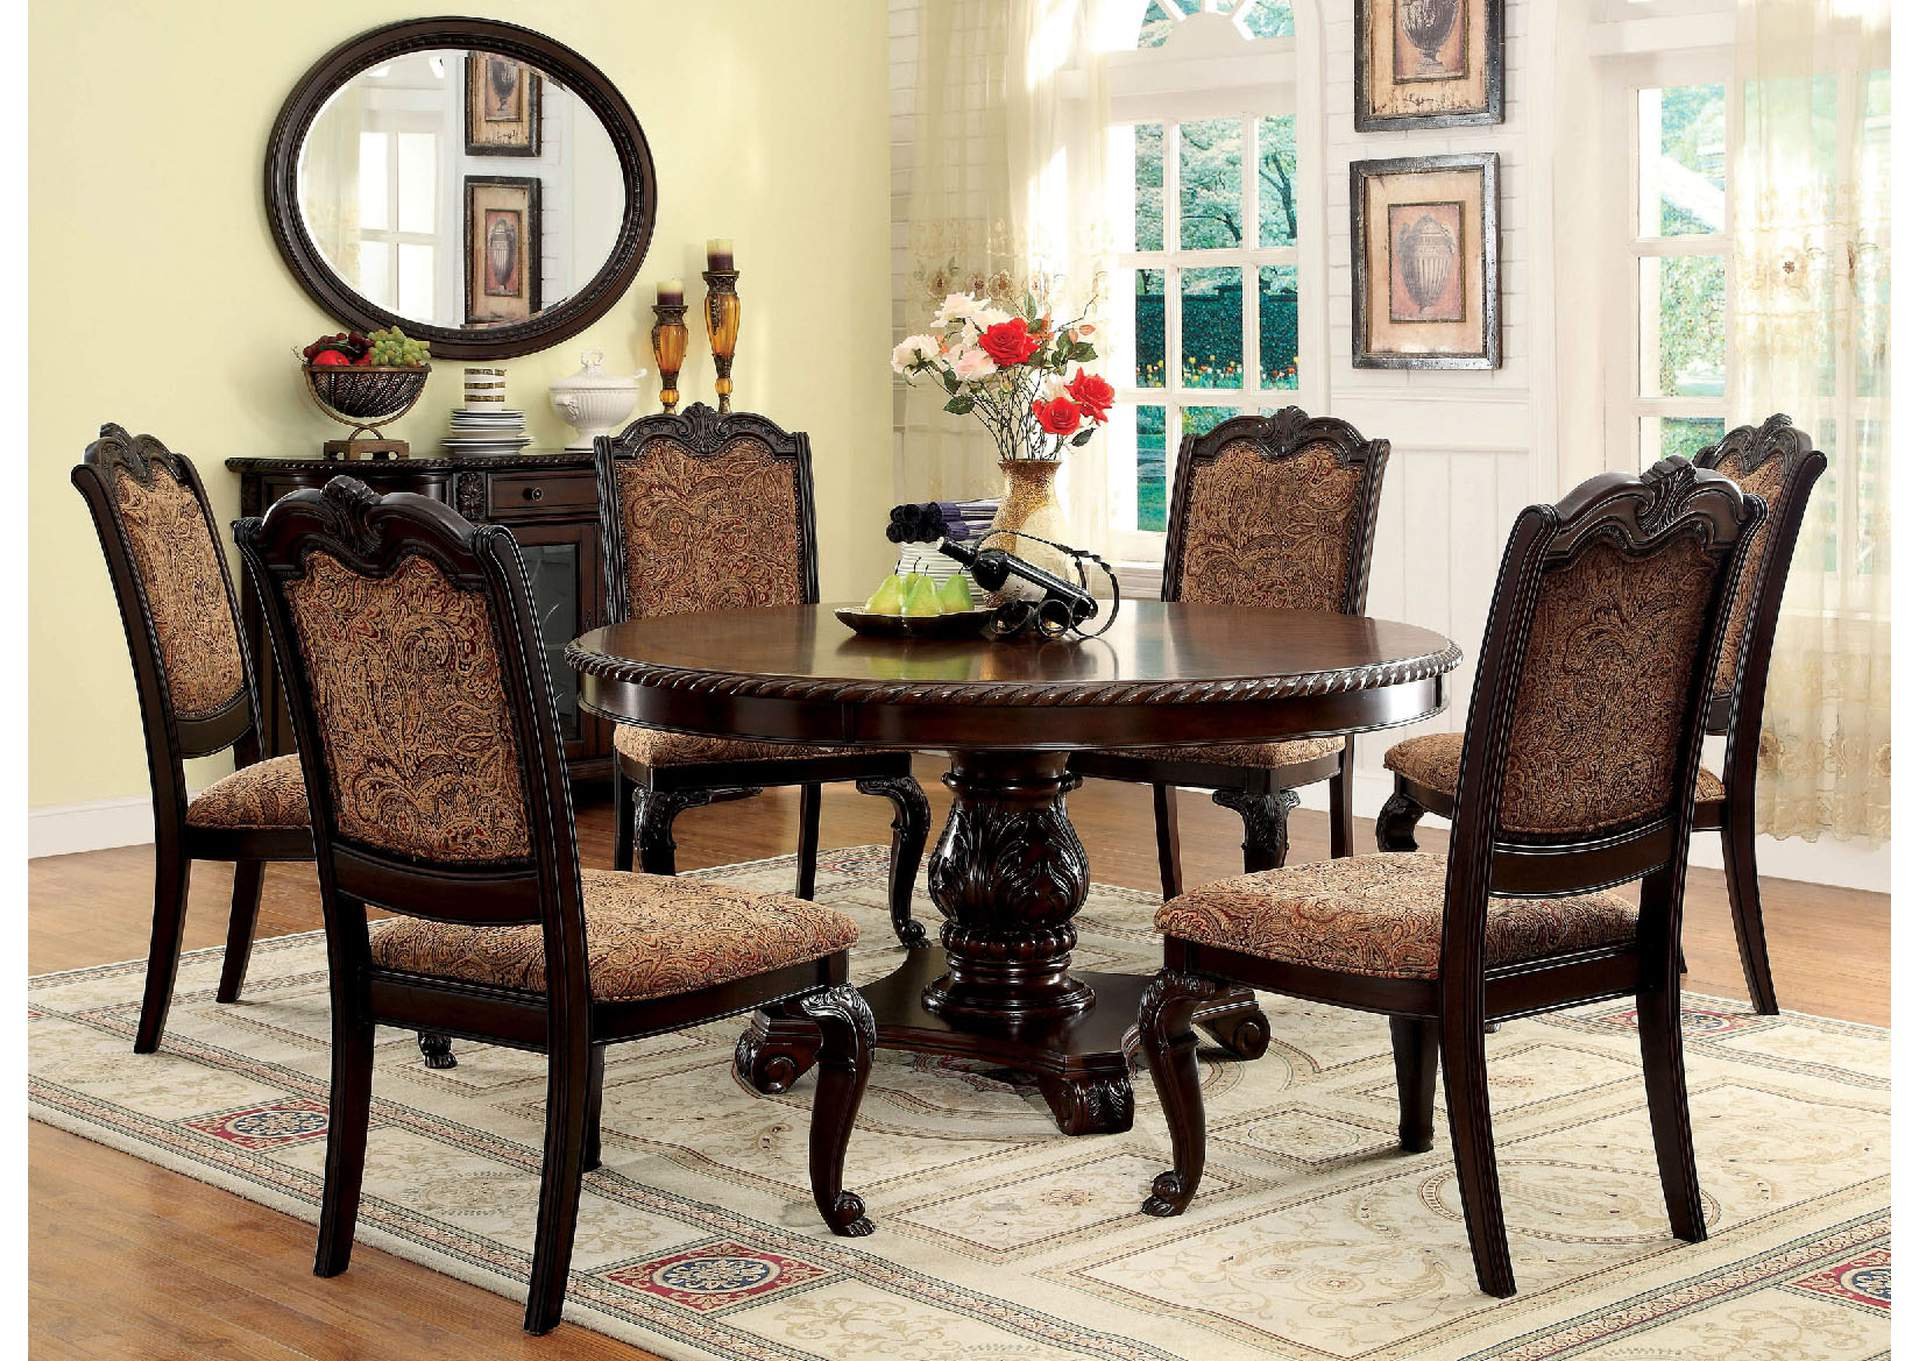 Good Bellagio Round Dining Table W/6 Side Chairs,Furniture Of America